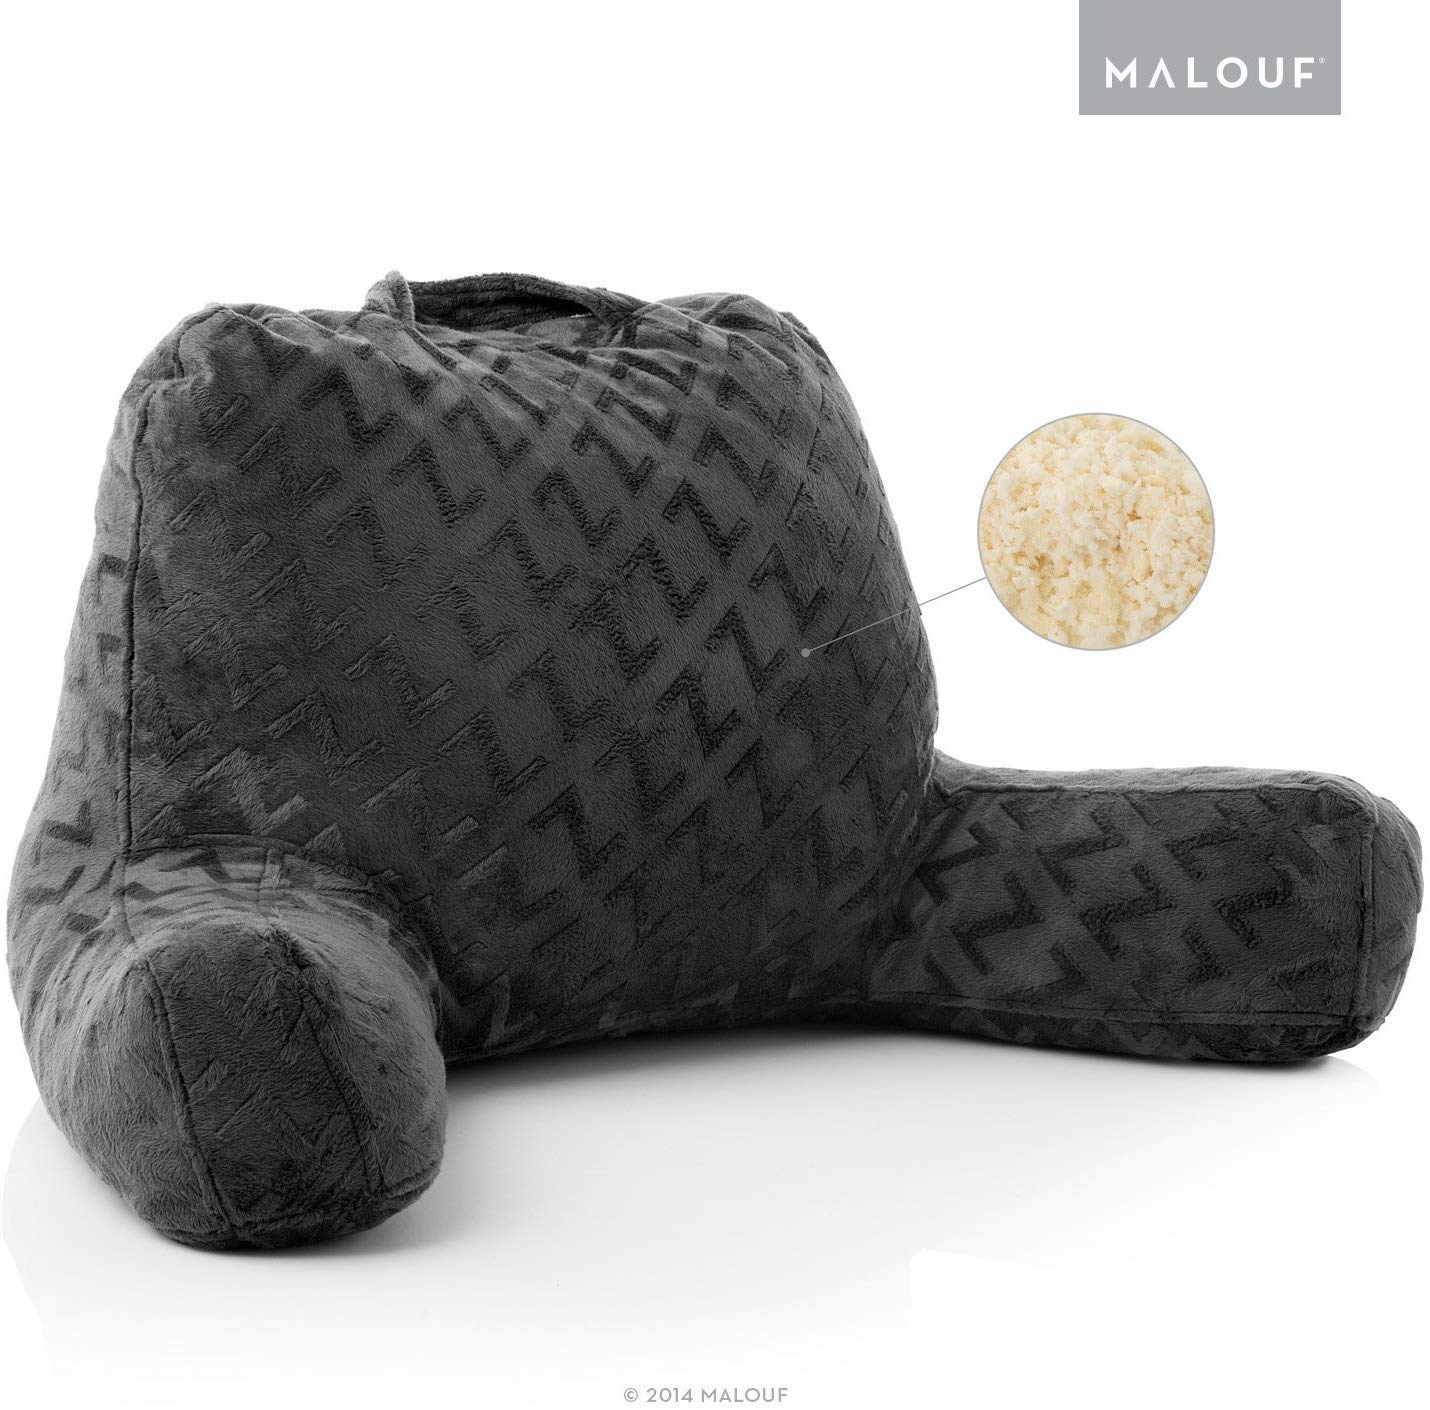 MALOUF Z Best Reading Pillow review by www.dailysleep.org